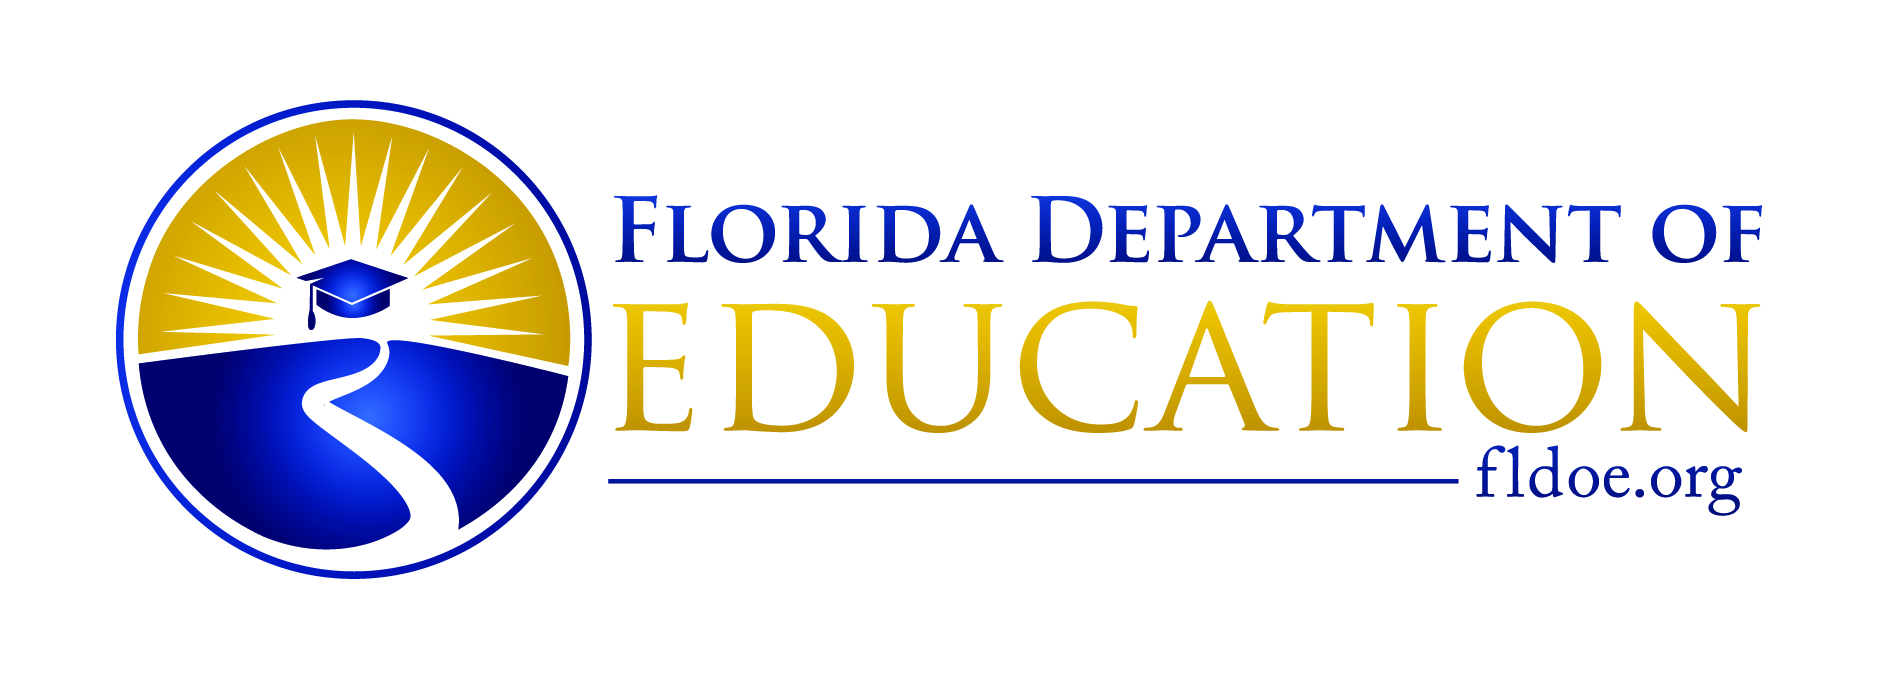 florida education fund laws of life essay contest National garden clubs, inc official website | providing education and promoting the love of gardening, floral design, civic, and environmental responsibility.